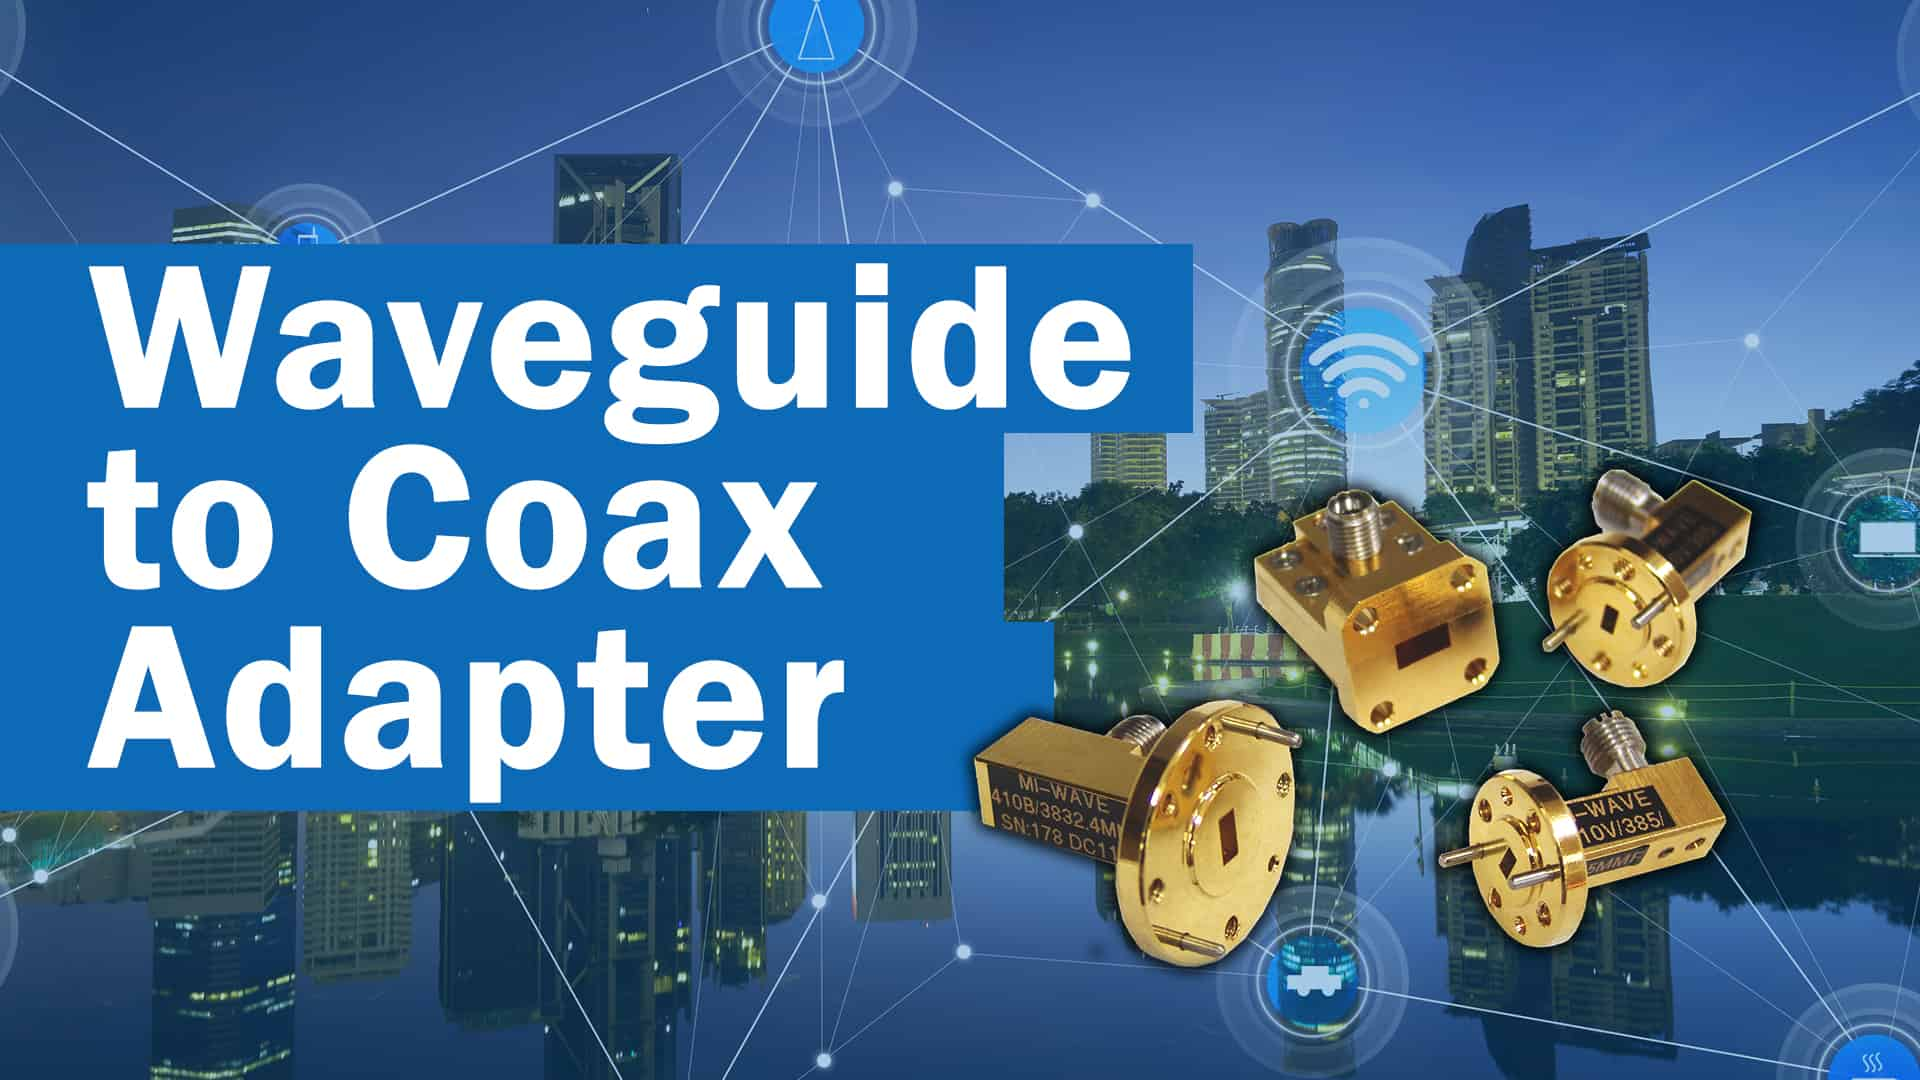 Waveguide to coax adapter banner